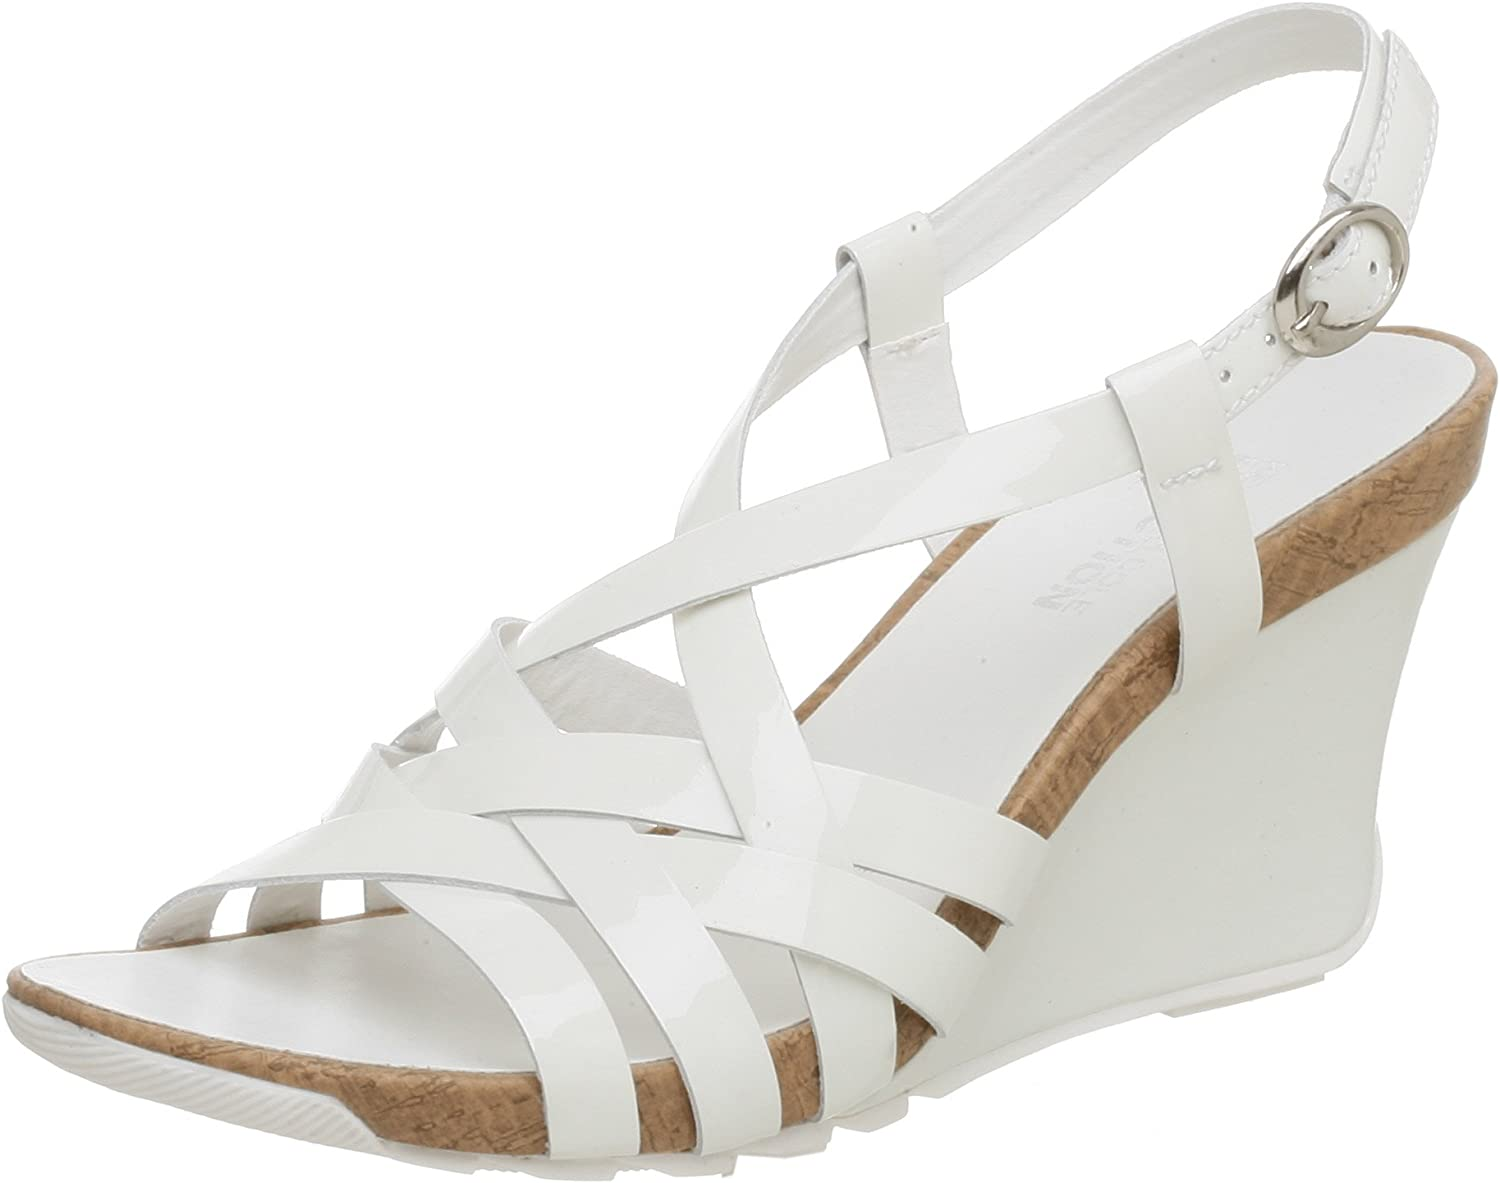 Sales Kenneth Cole REACTION Cedarful Women's Wedge High material